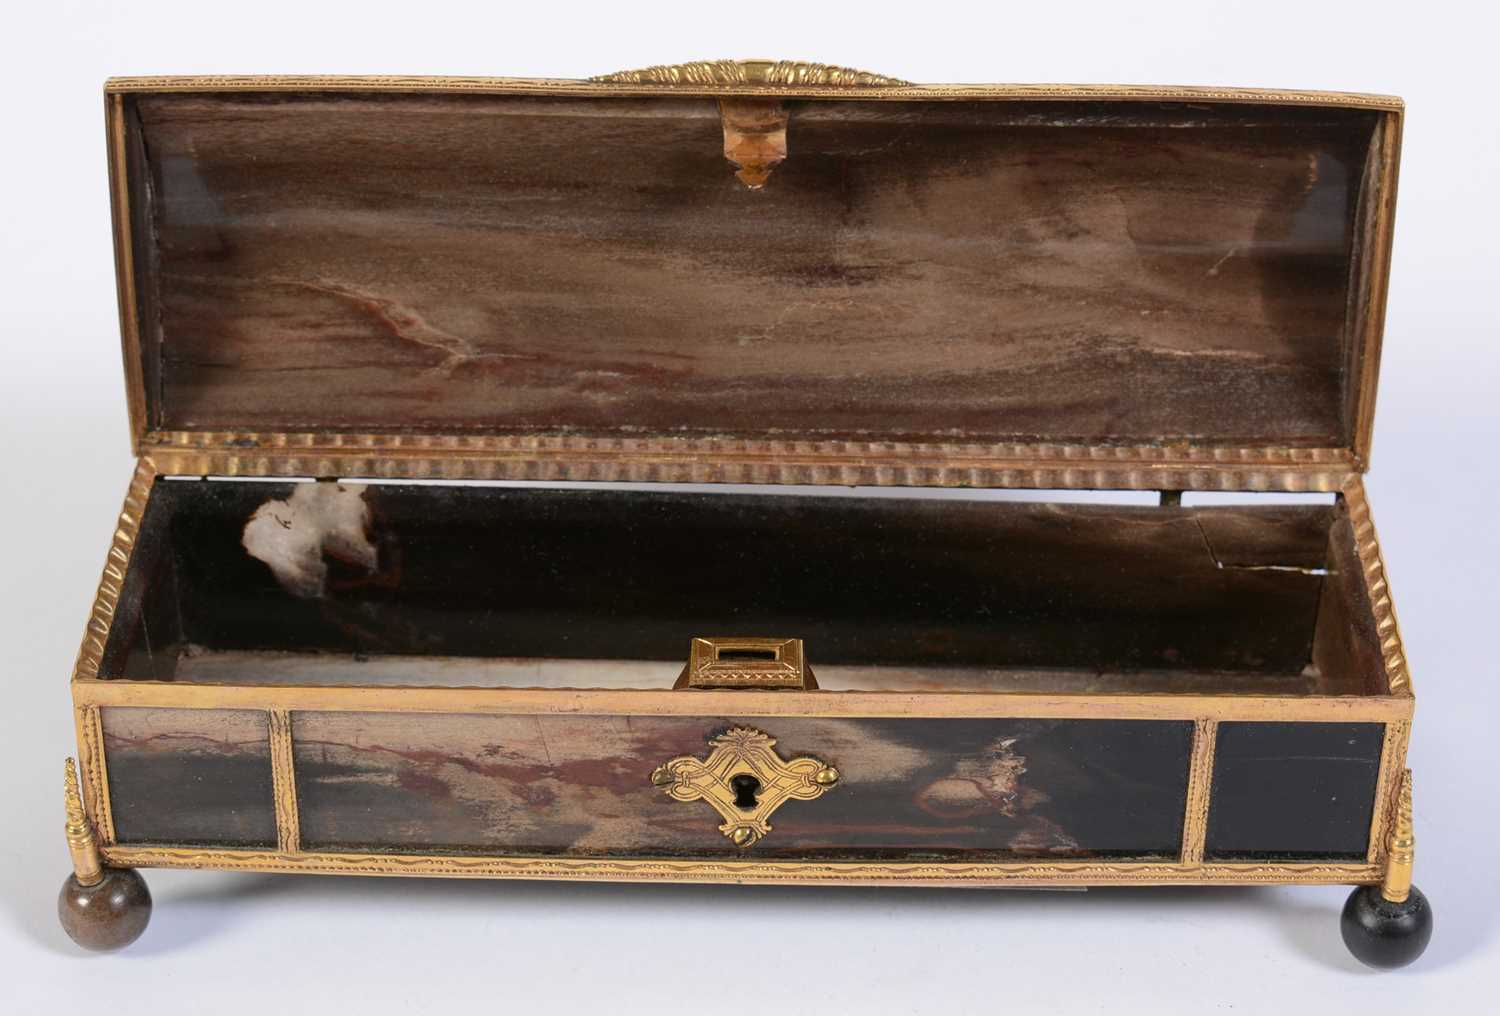 A 19th C marble and giltmetal dome-topped casket - Image 6 of 6